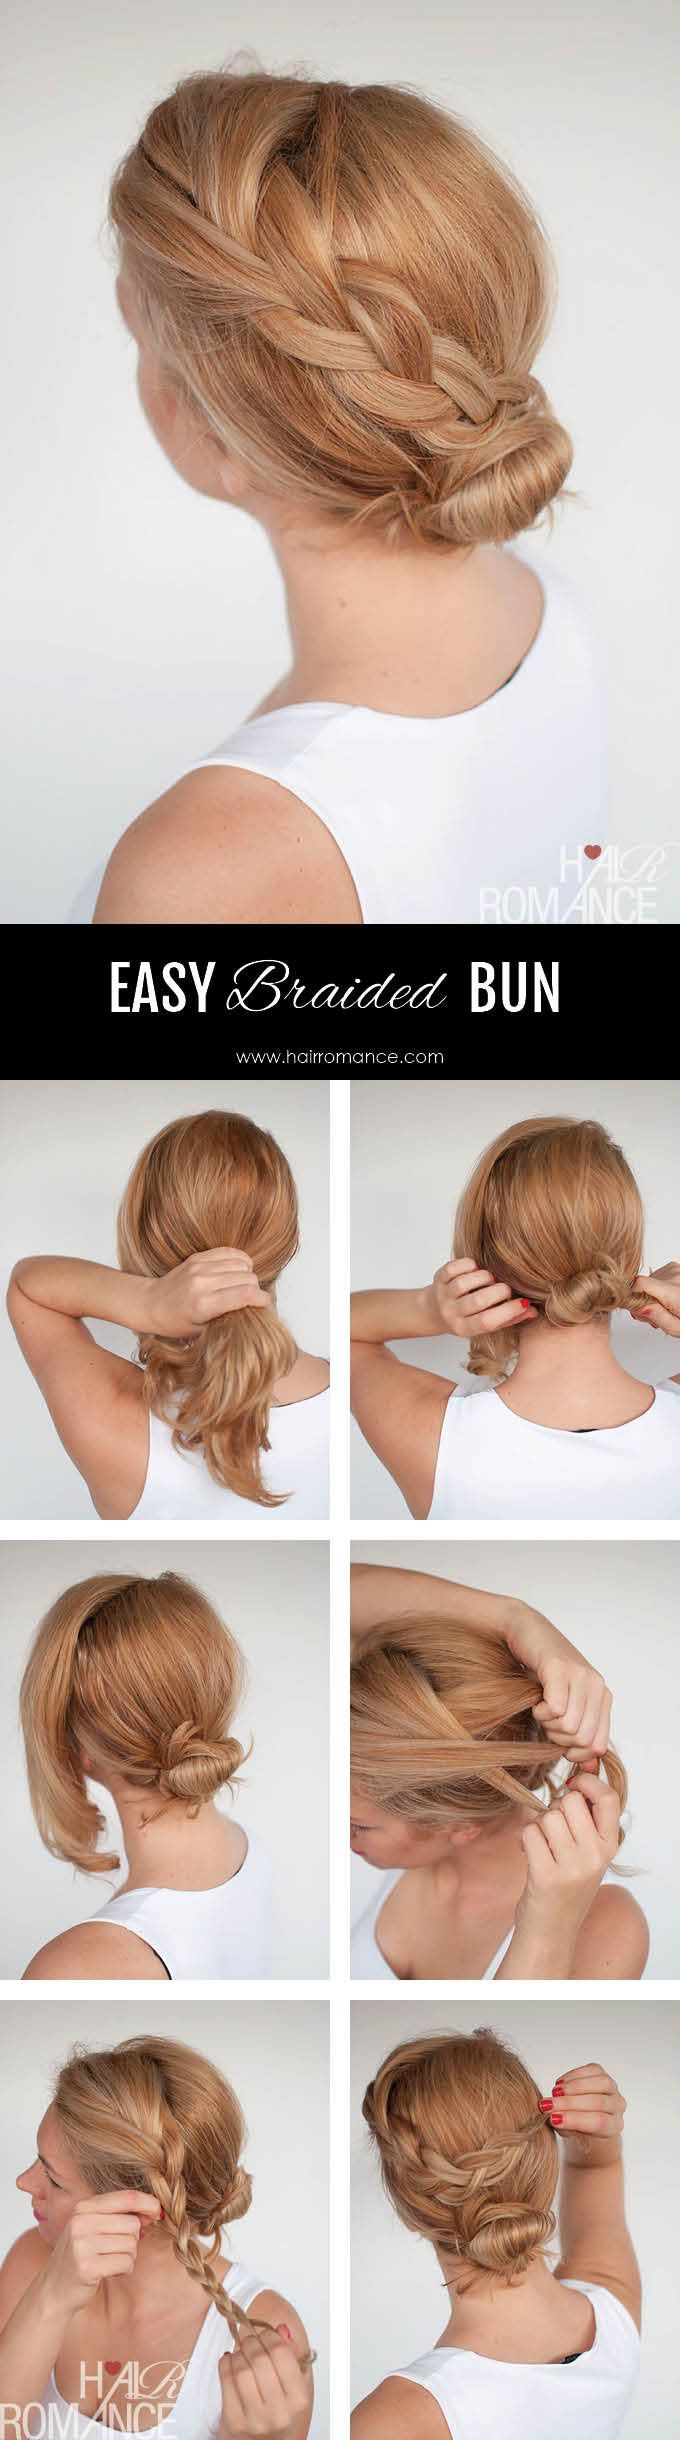 Simple braid tutorial - click through for the full hairstyle tutorial